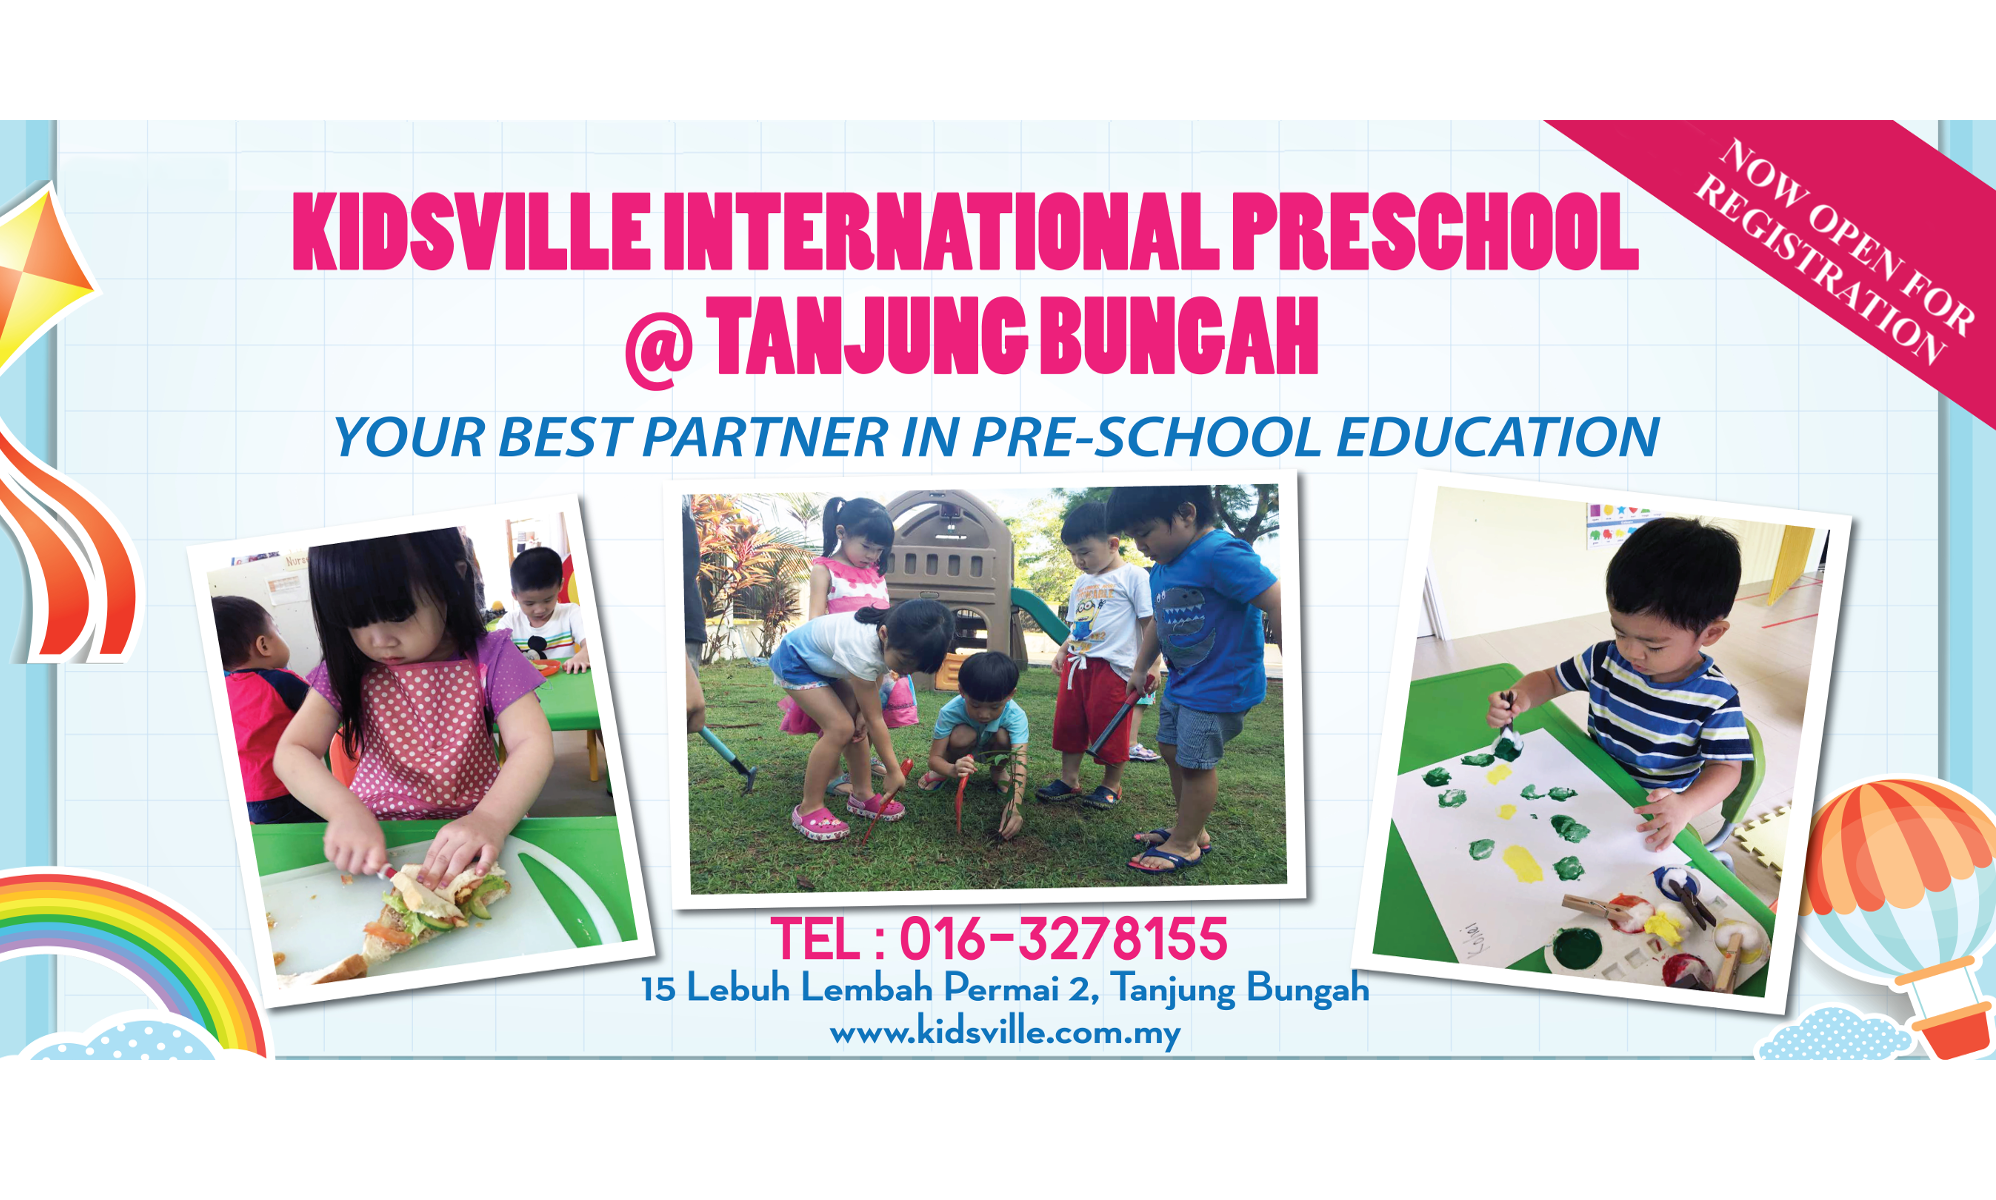 Welcome To Kidsville International Preschool